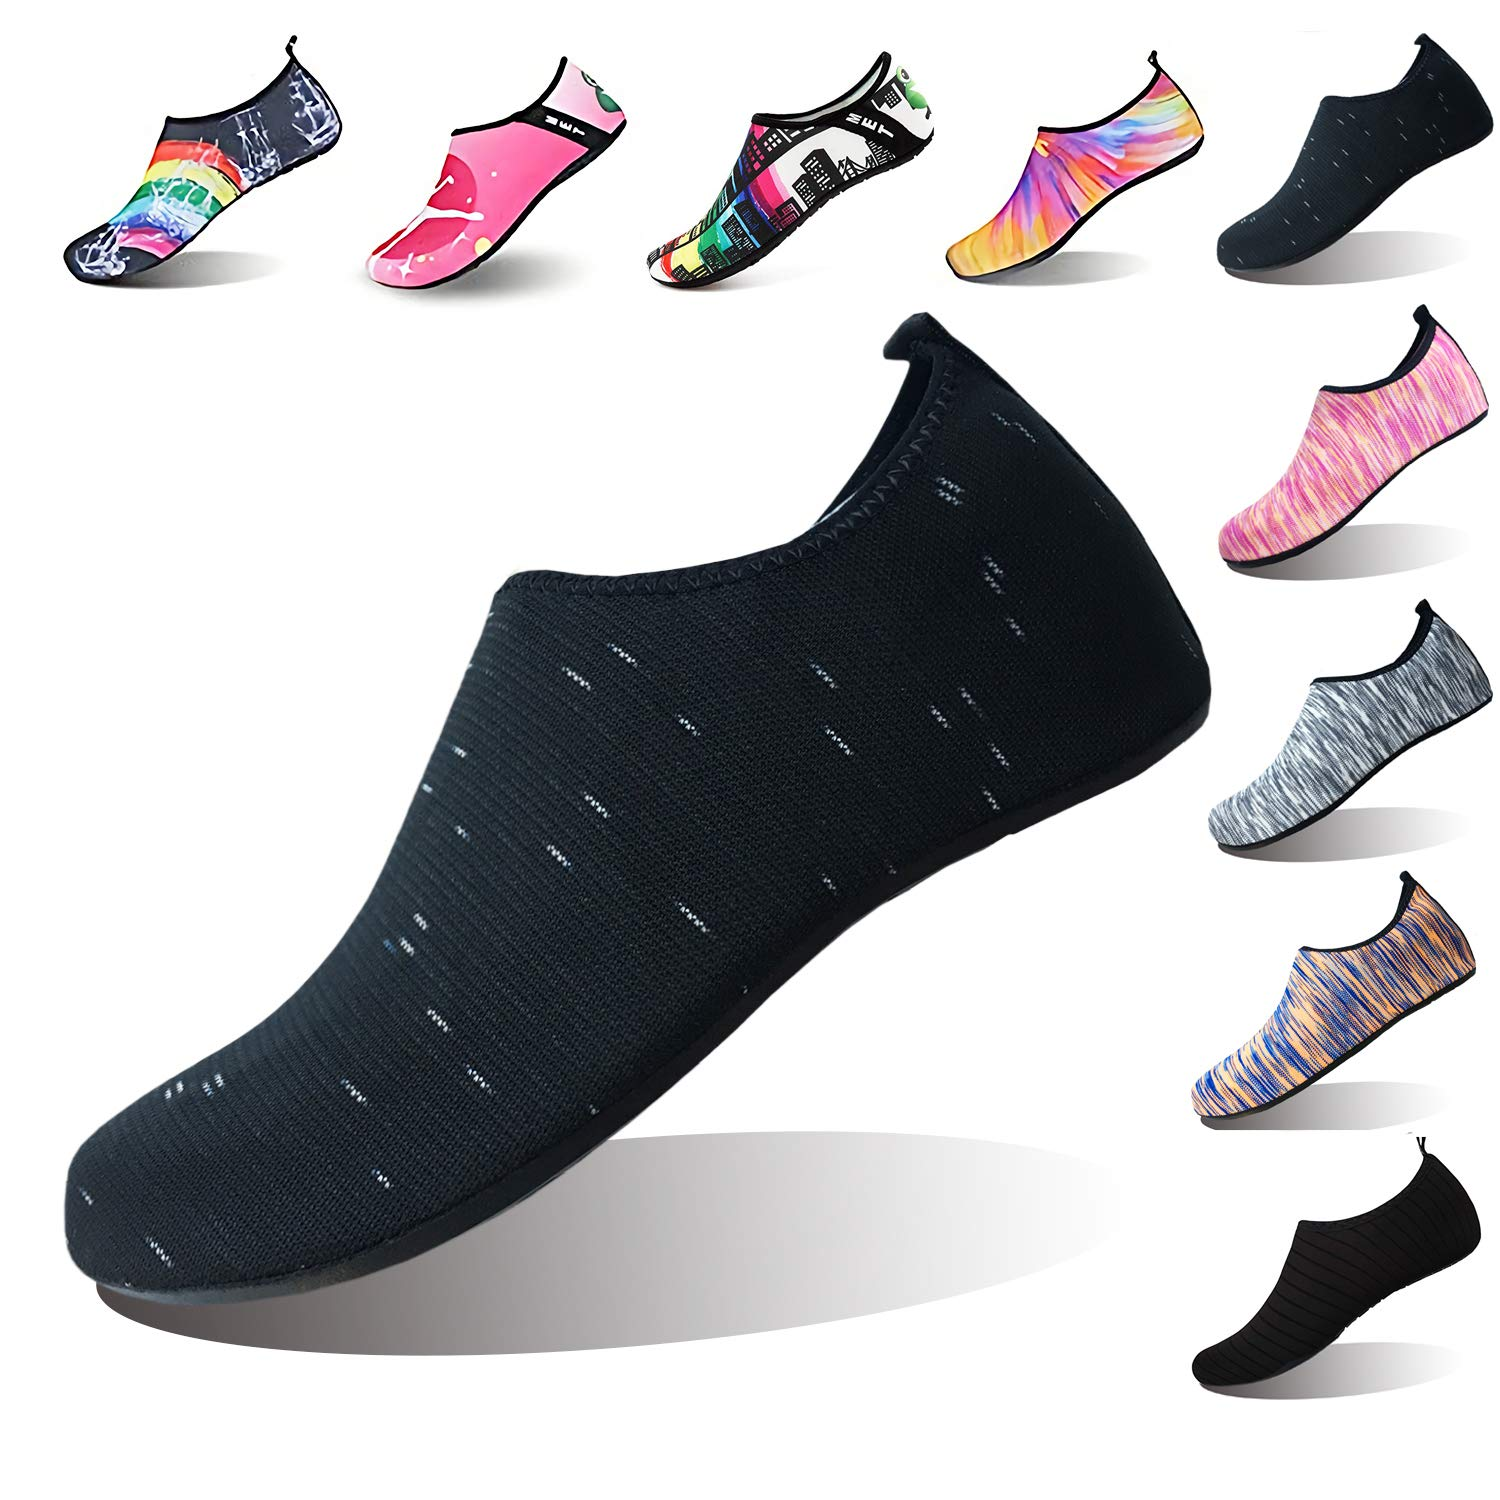 Summer Outdoor On-Slip Rubber Sole Water Shoes Barefoot Aqua Socks Beach Swim Surf Yoga Shoes Men Women Kids (M(W:7.5-8.5,M:6.5-7.5), Black dot)